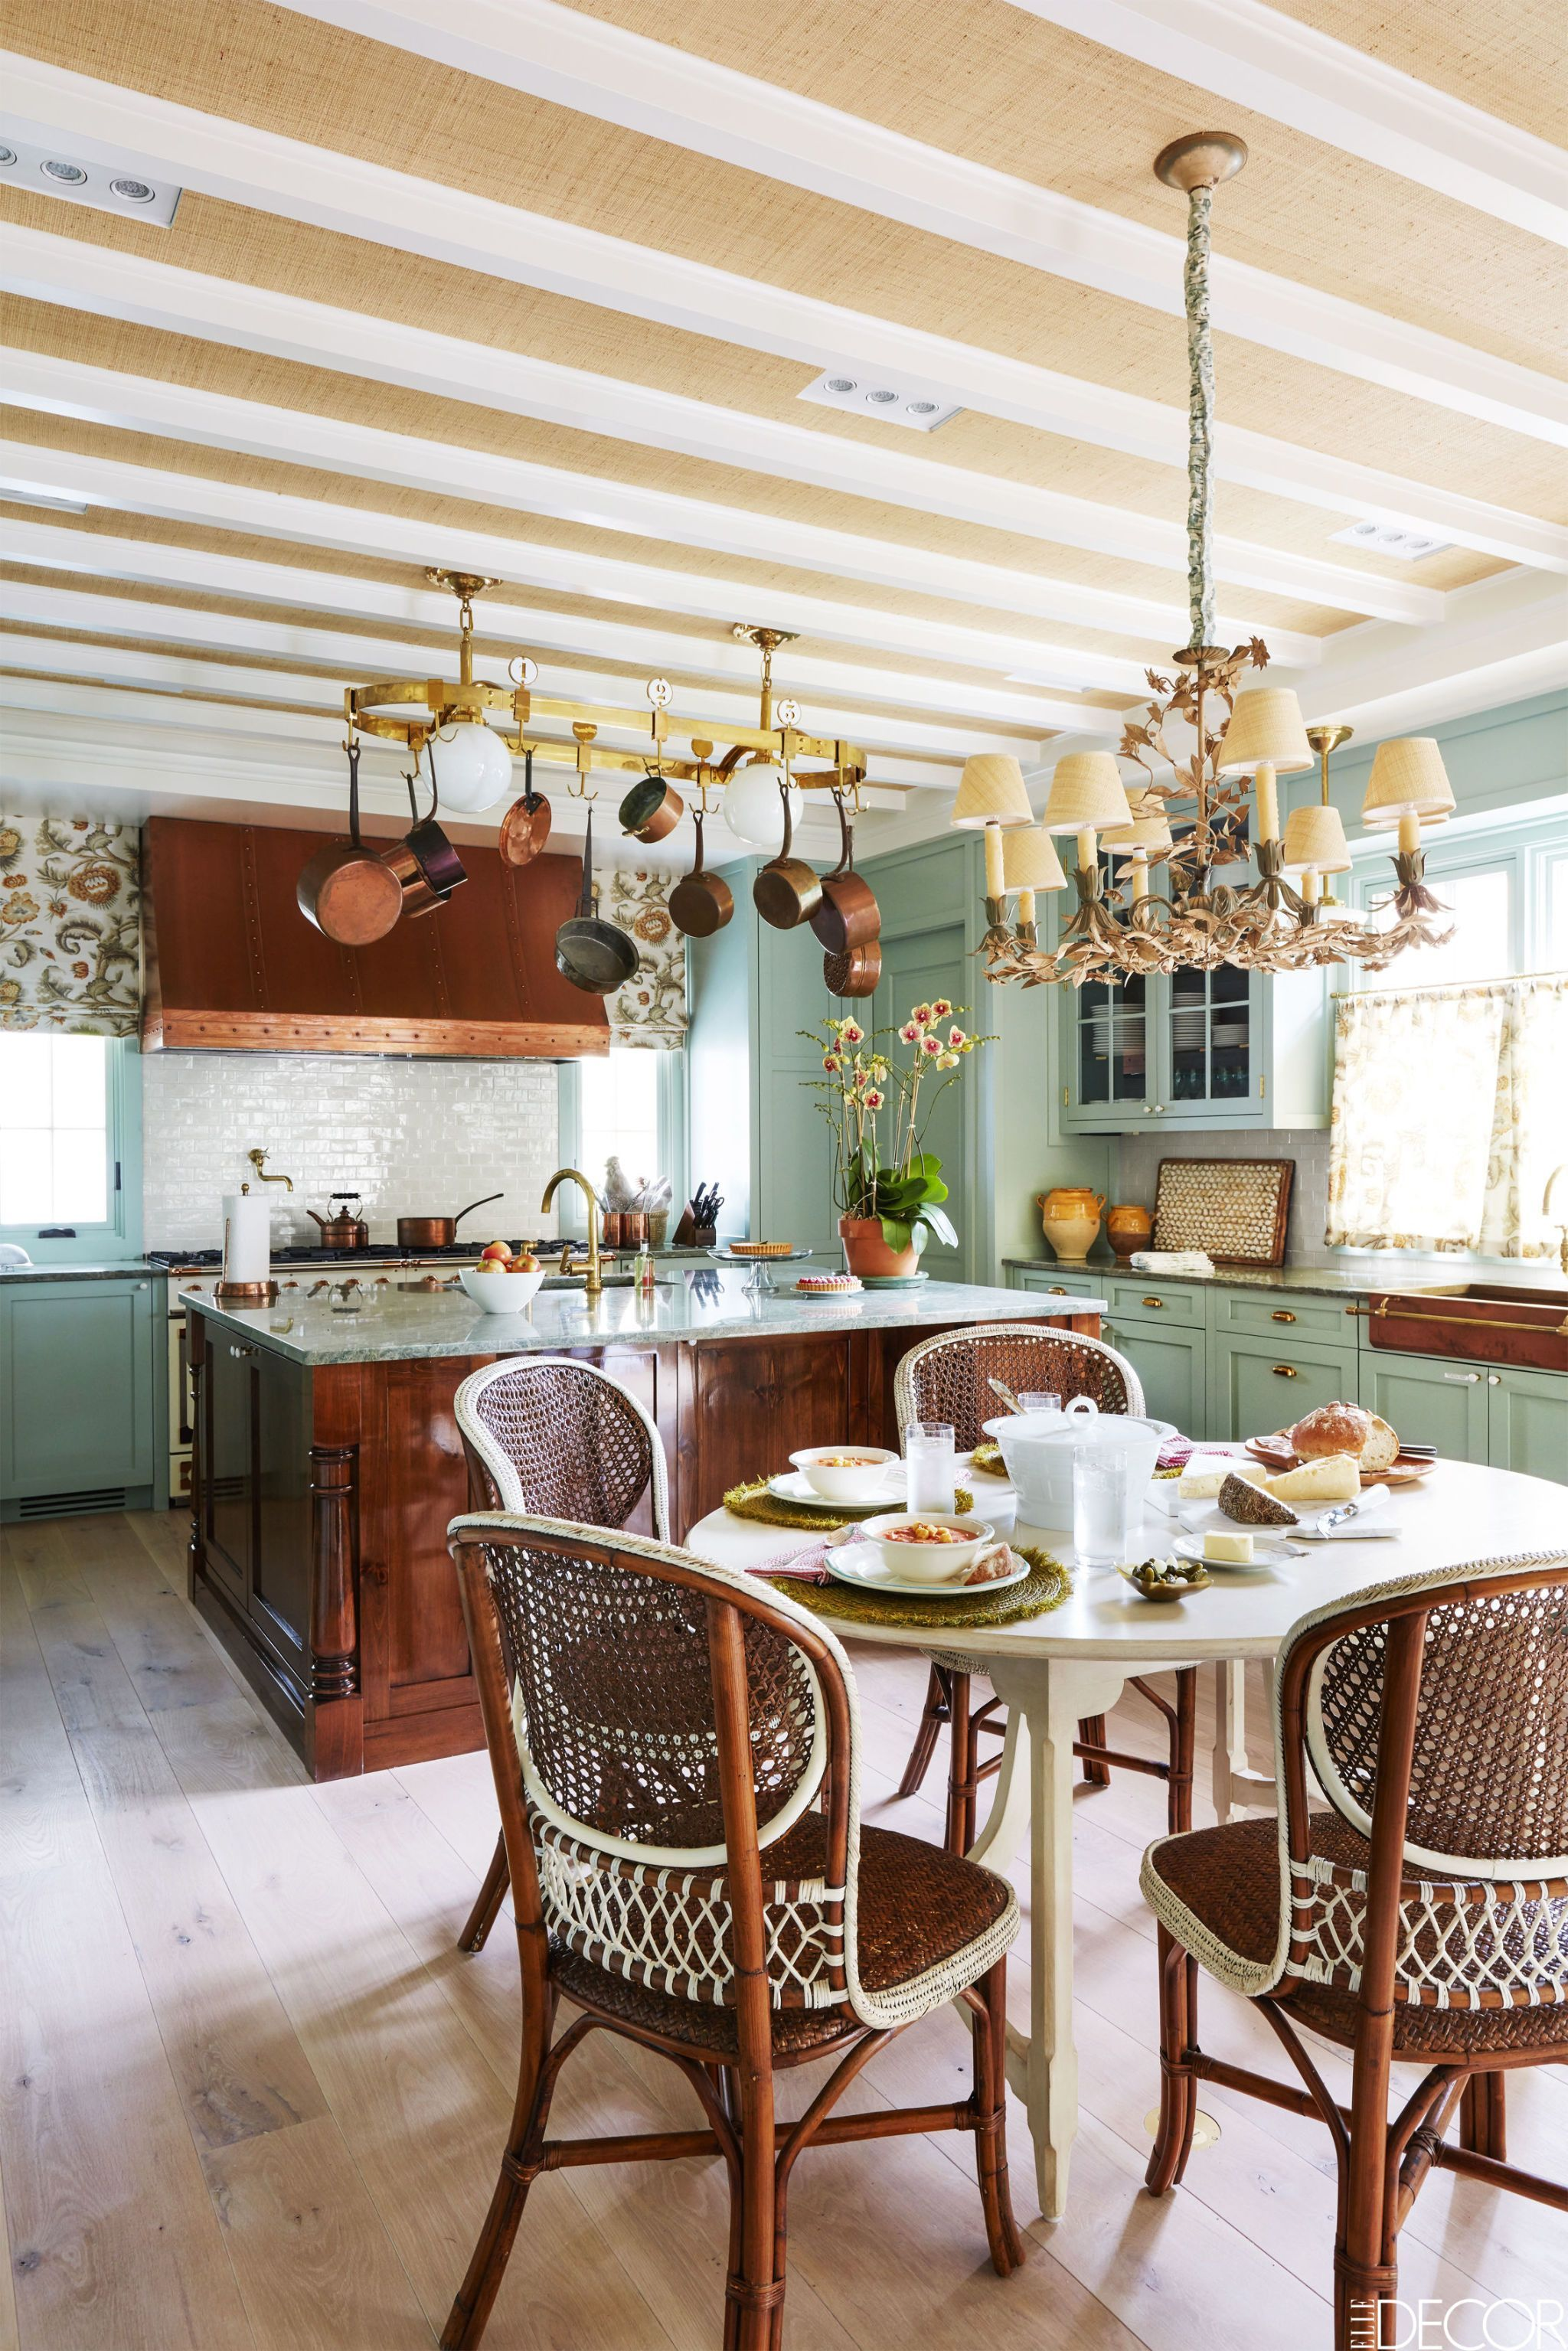 Fullsize Of Country Home Kitchens